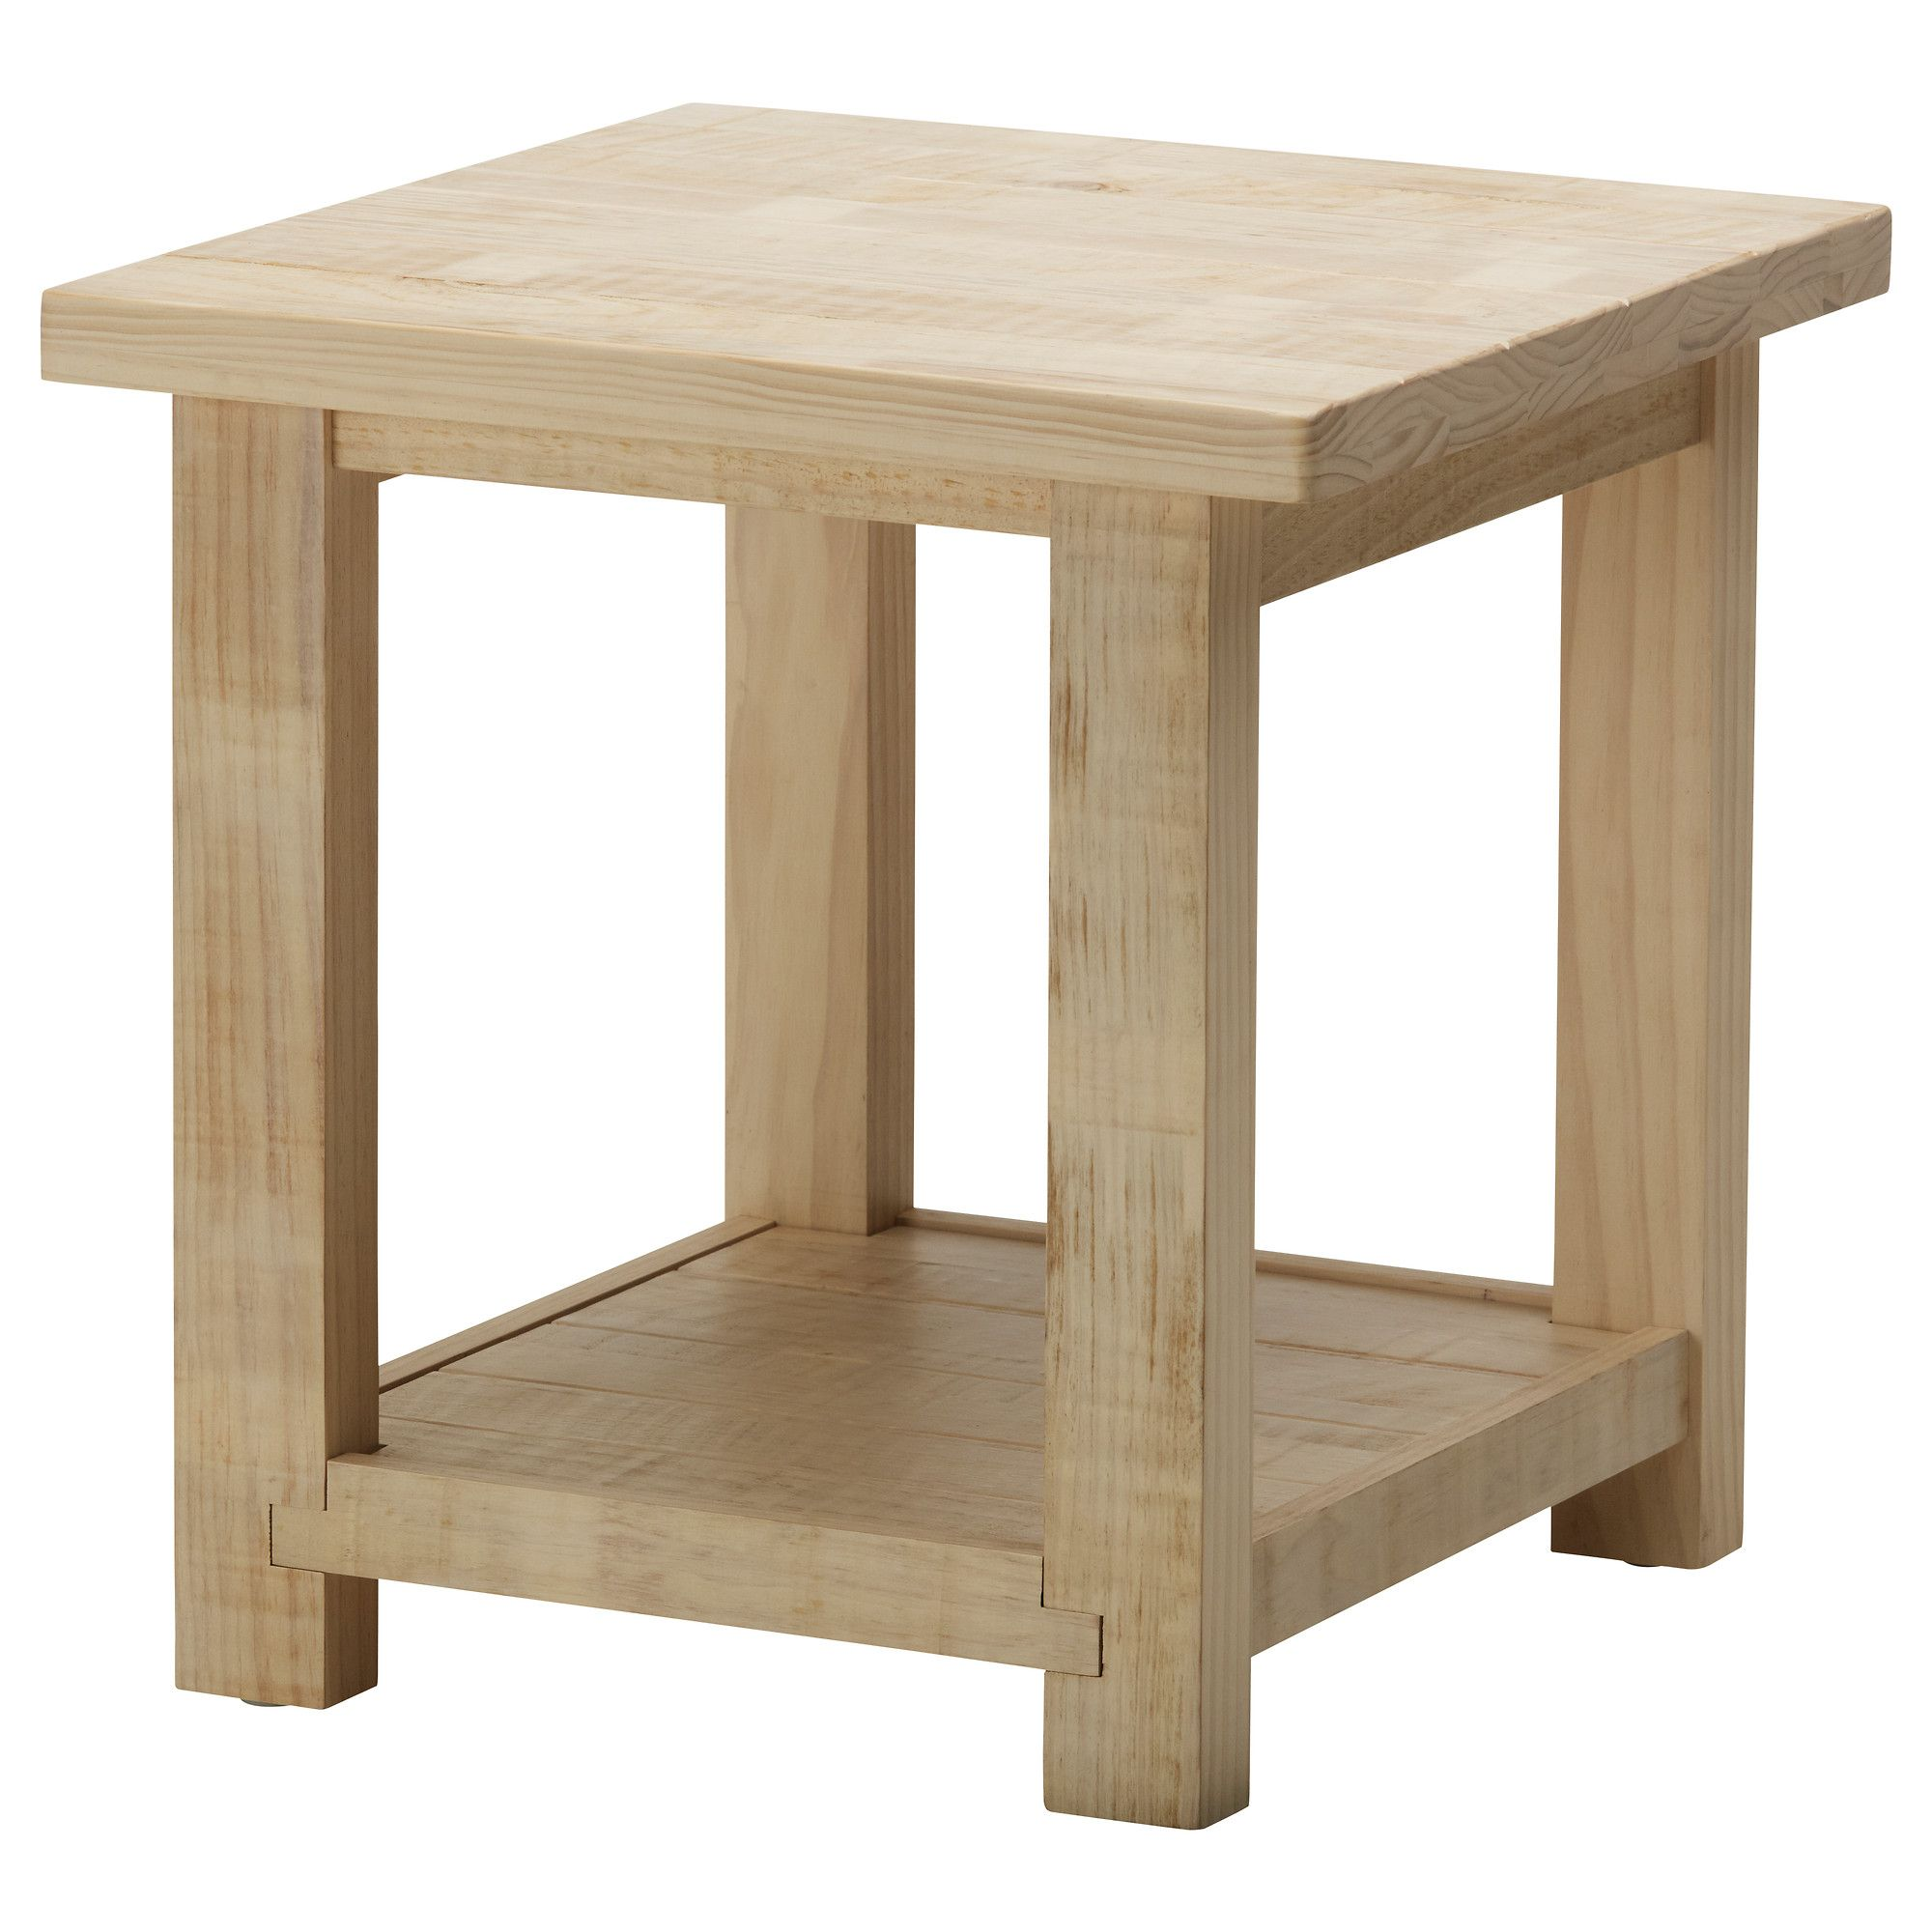 Ikea Küche Board Rekarne Side Table Ikea For Family Room Paint A